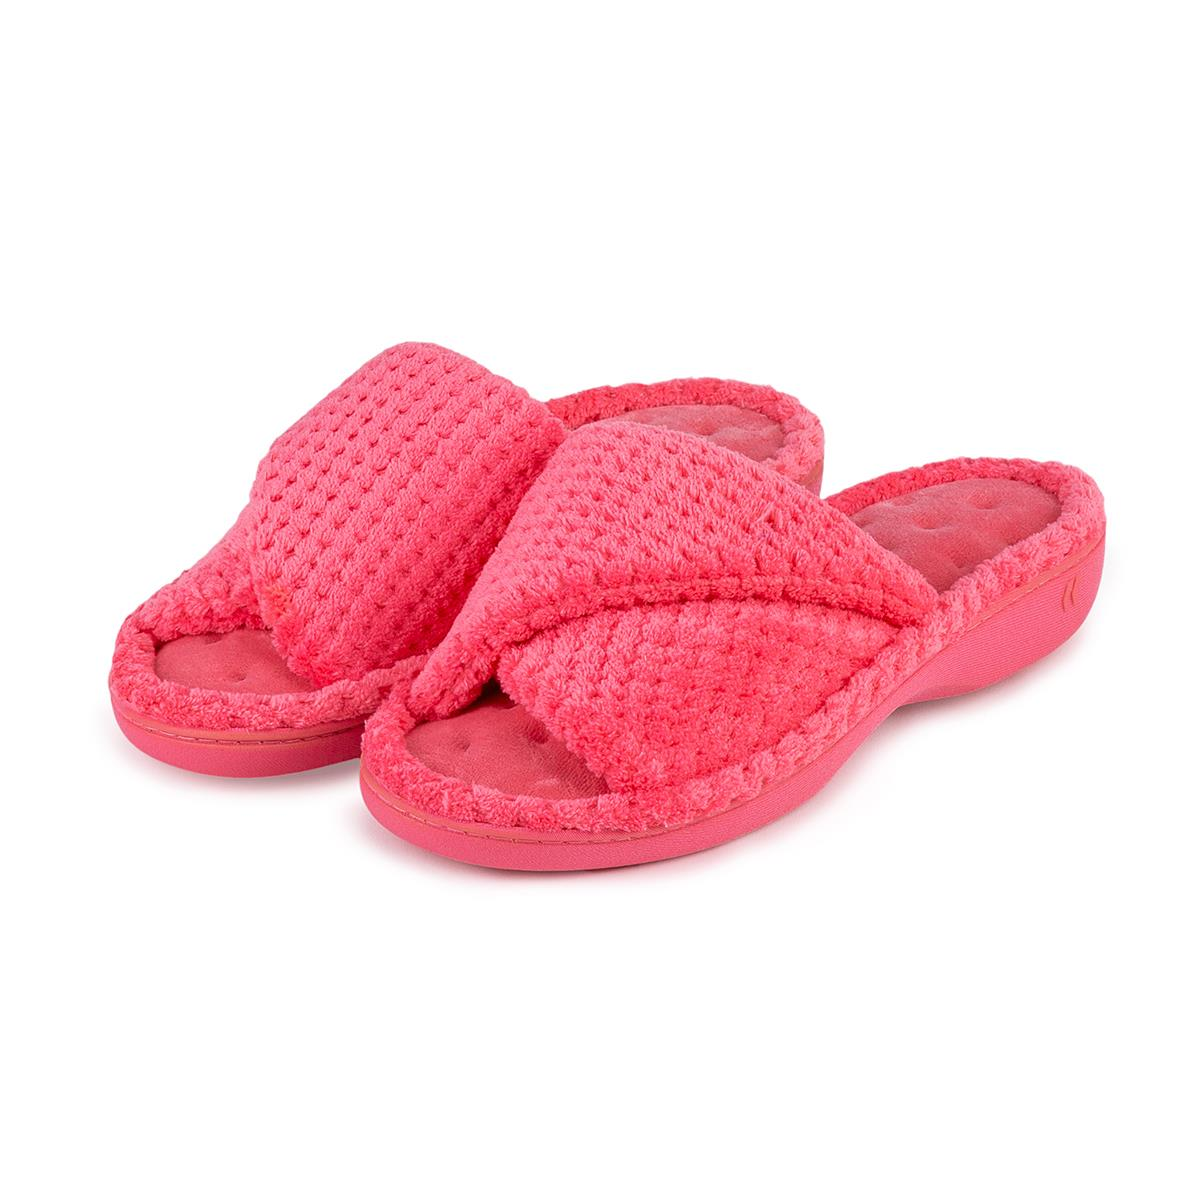 686b28db2a351 Isotoner Ladies Popcorn Turnover Open Toe Slippers